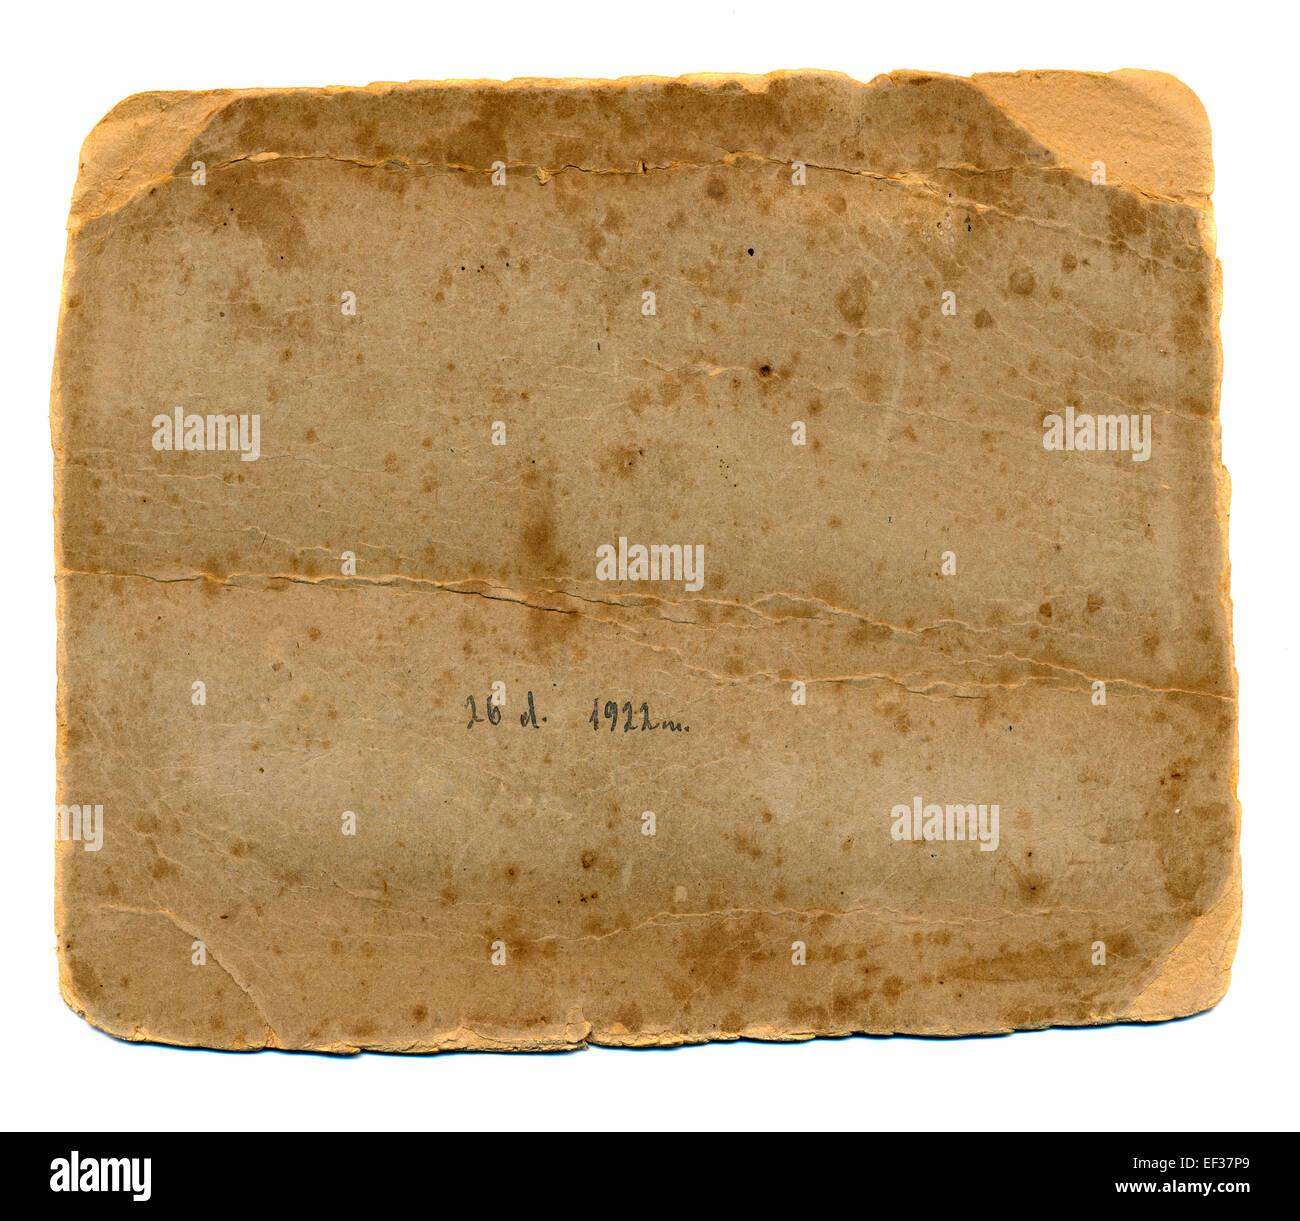 old photos grunge paper card back isolated on white - Stock Image